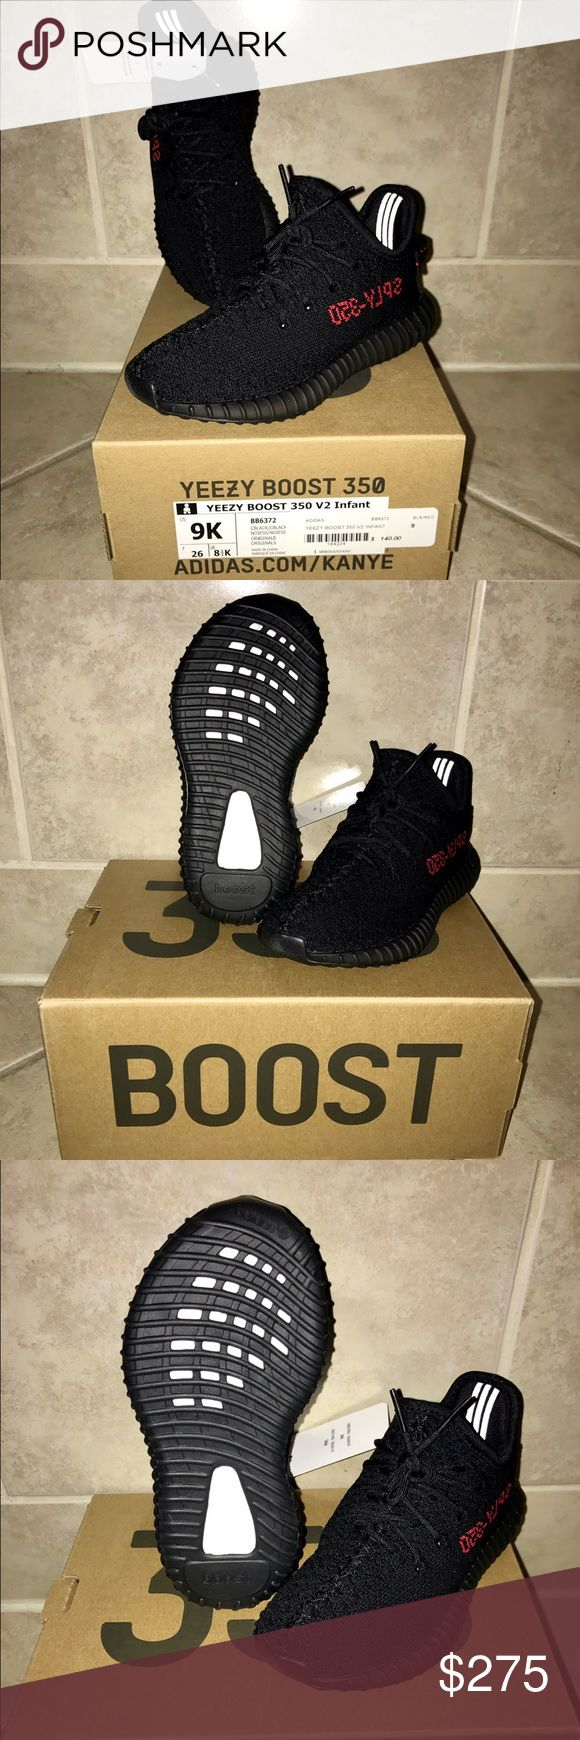 YEEZY BOOST 350 V2 Brand new/ authentic YEEZY boost 350 V2 for kids. Yeezy Shoes Sneakers